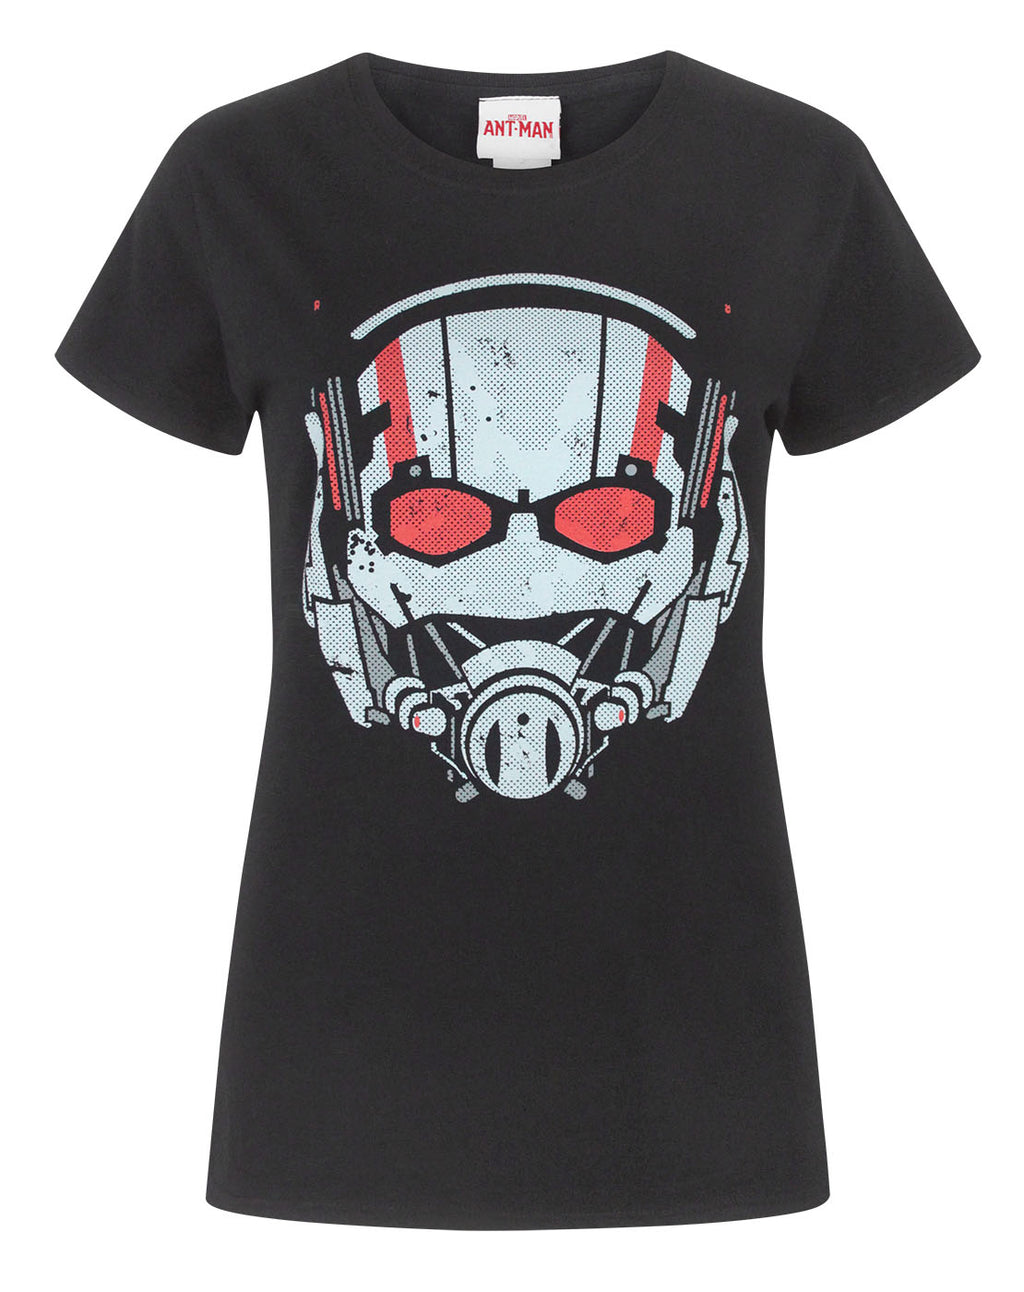 Marvel Ant-Man Women's T-Shirt